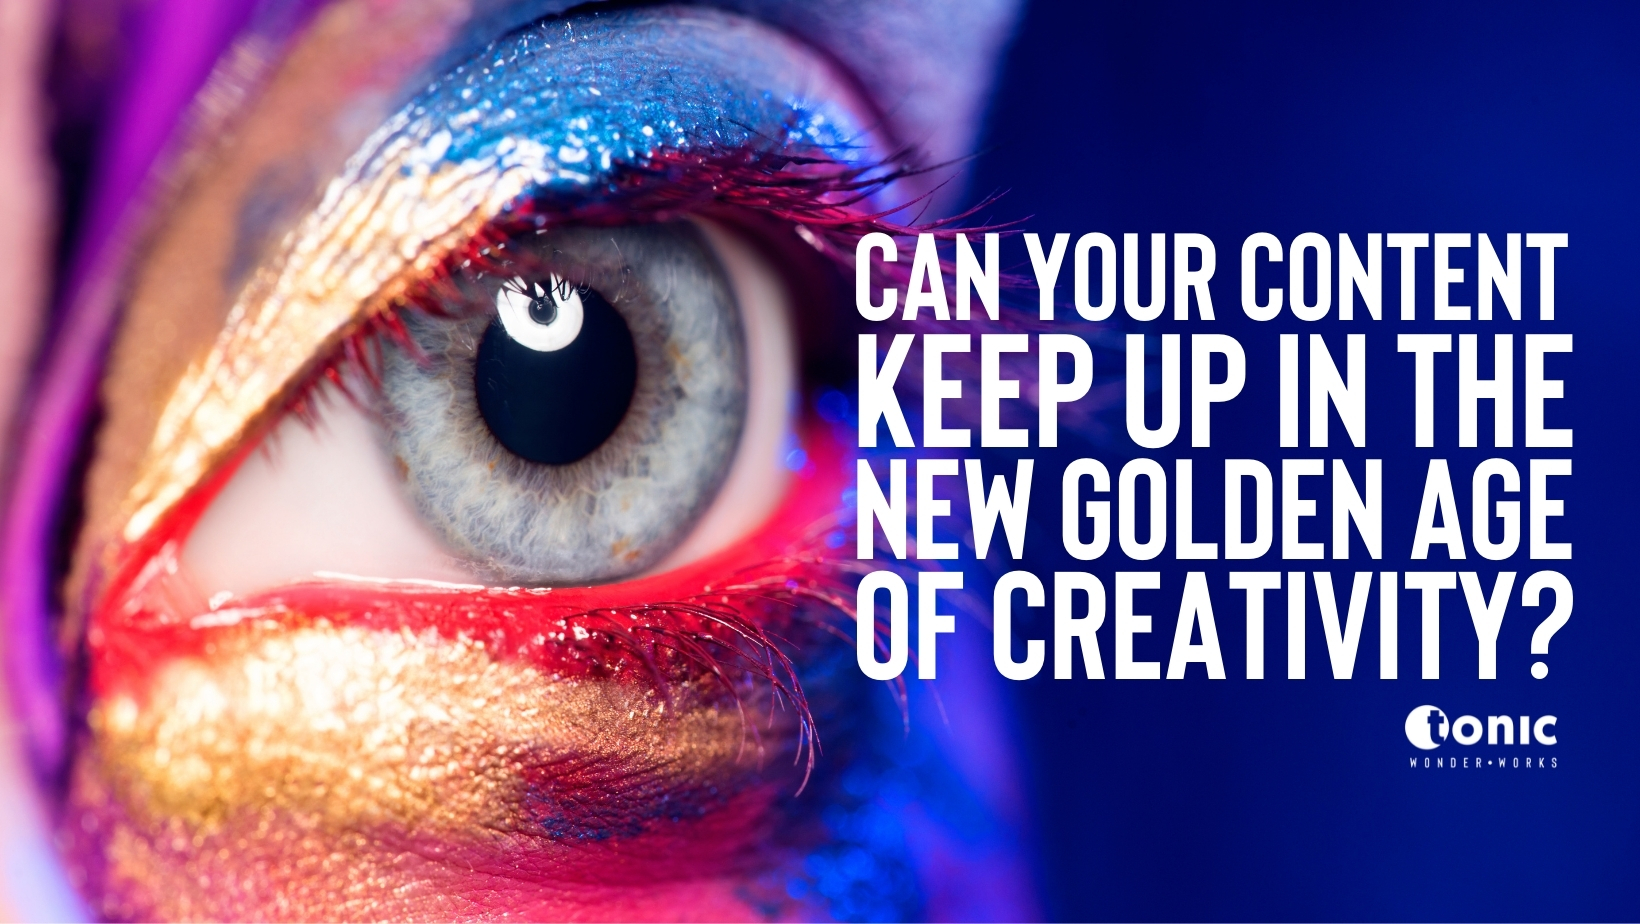 Can your content keep up in the new golden age of creativity?